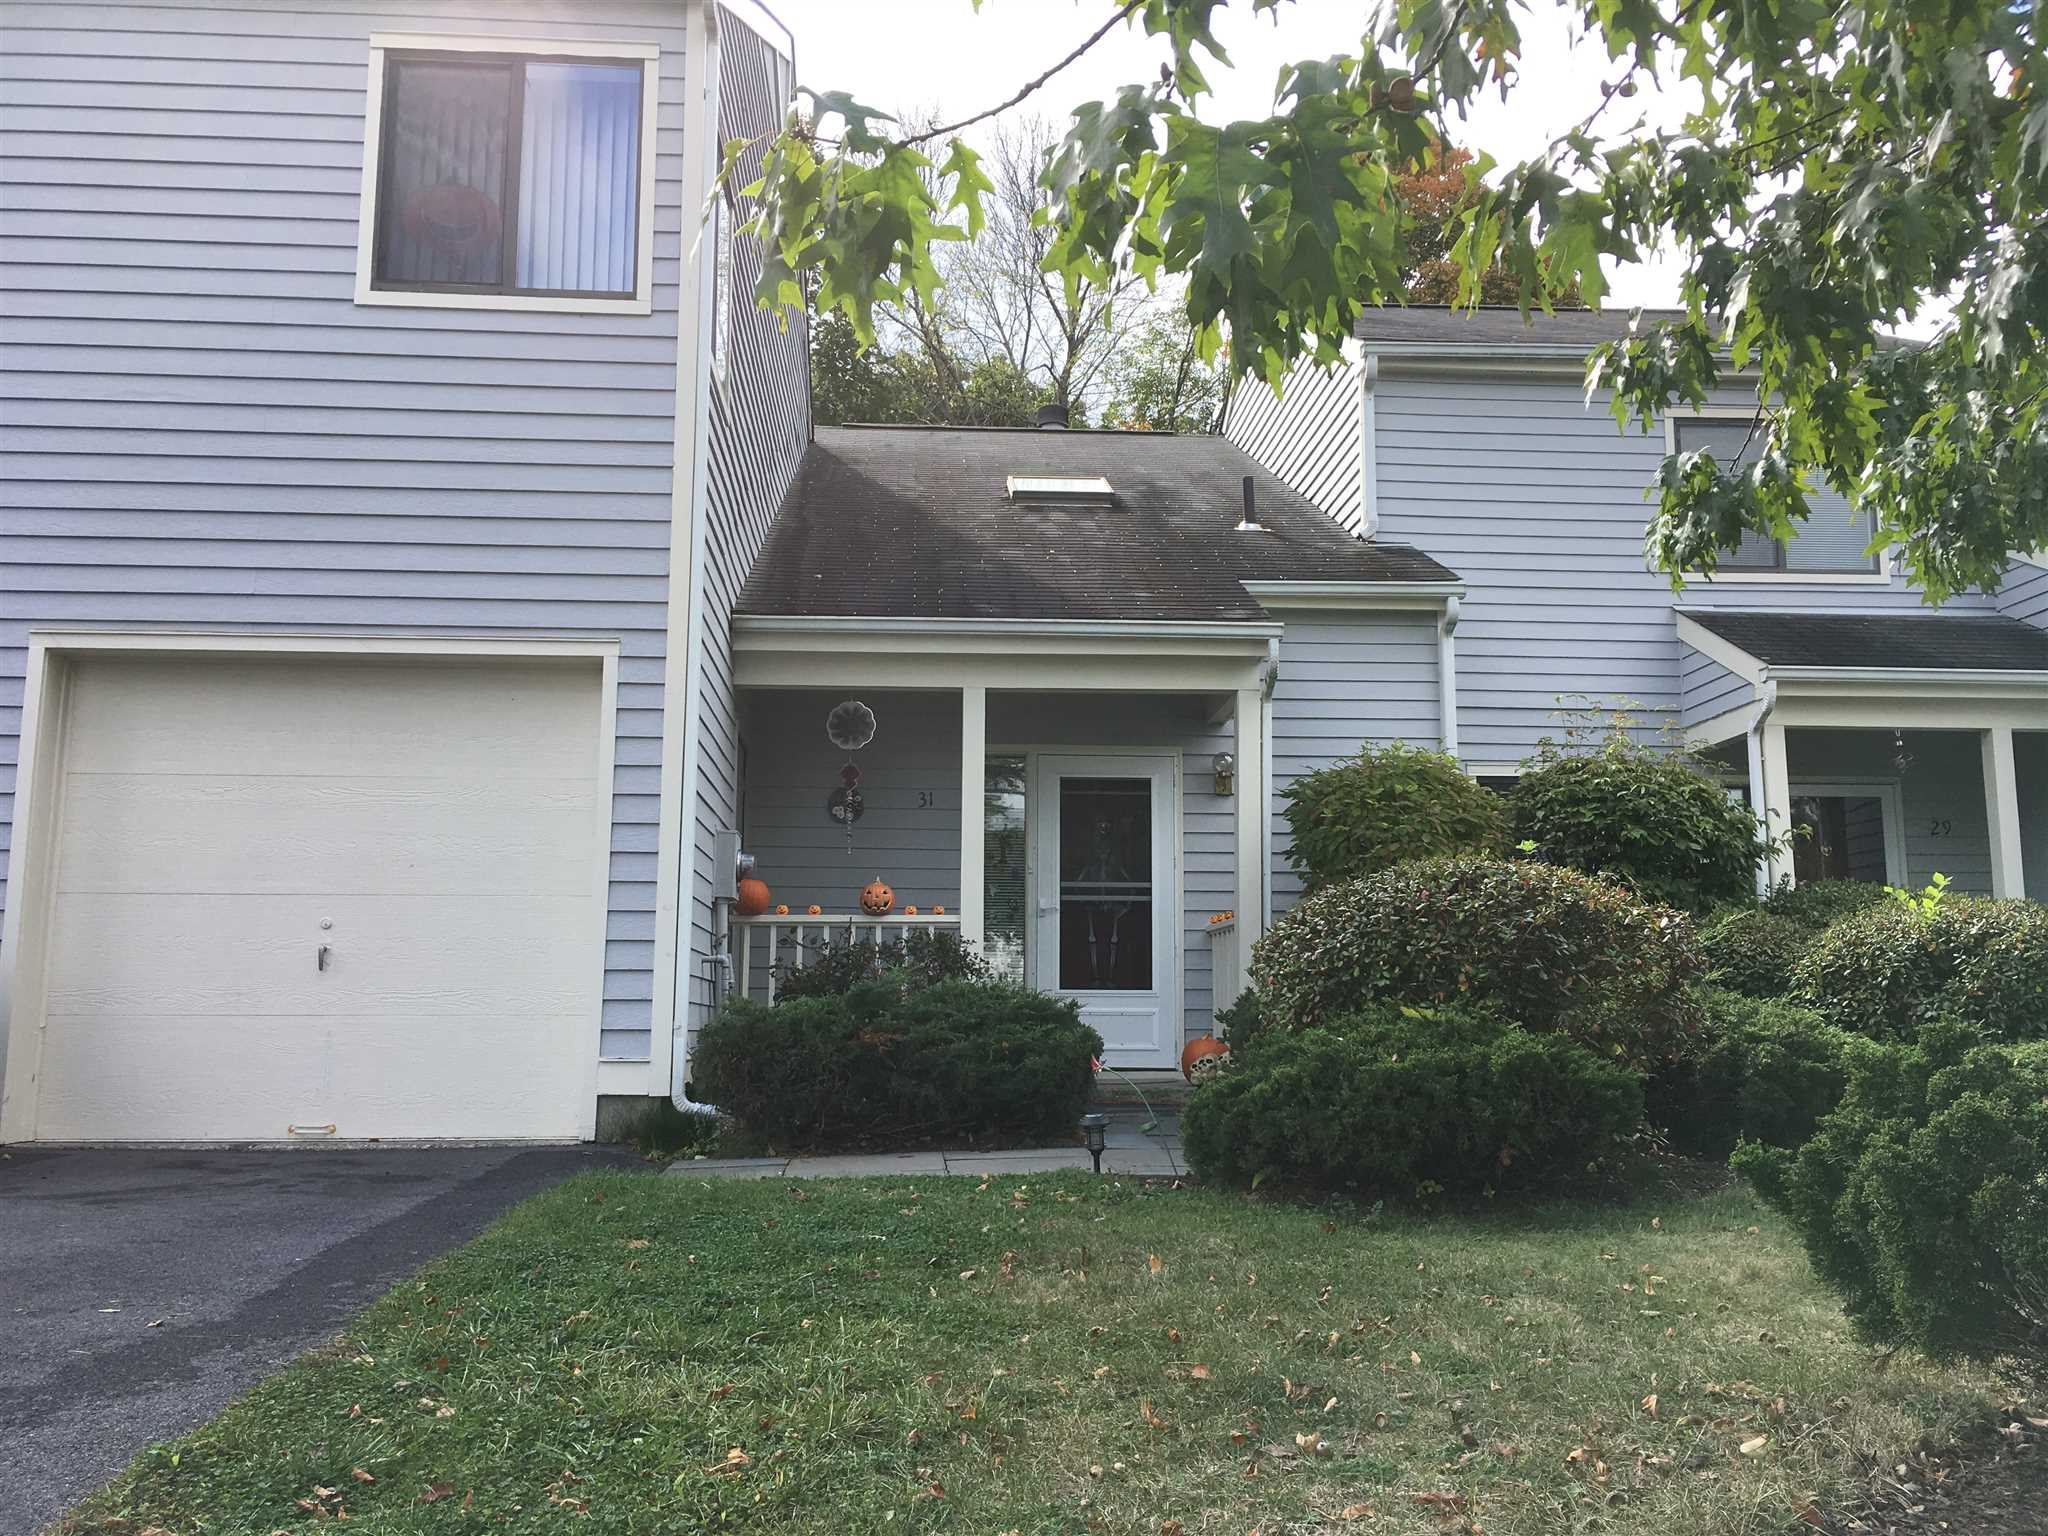 Single Family Home for Sale at 31 HIGHVIEW Road 31 HIGHVIEW Road East Fishkill, New York 12533 United States